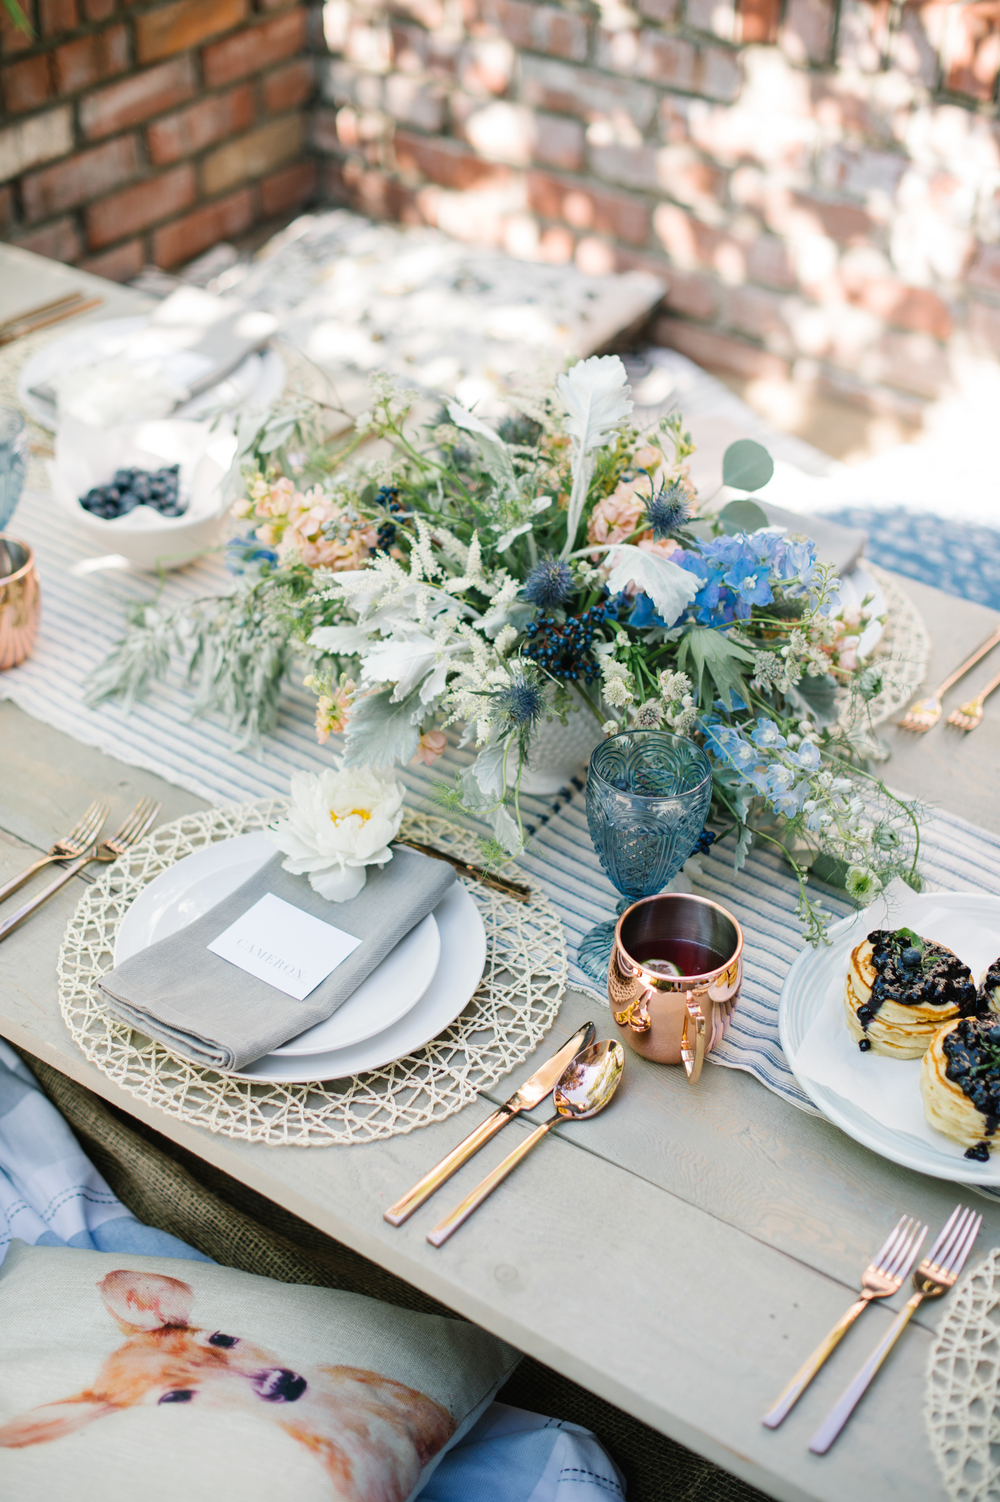 100 Layer Cake: Backyard summer brunch wedding inspiration. Click for more.